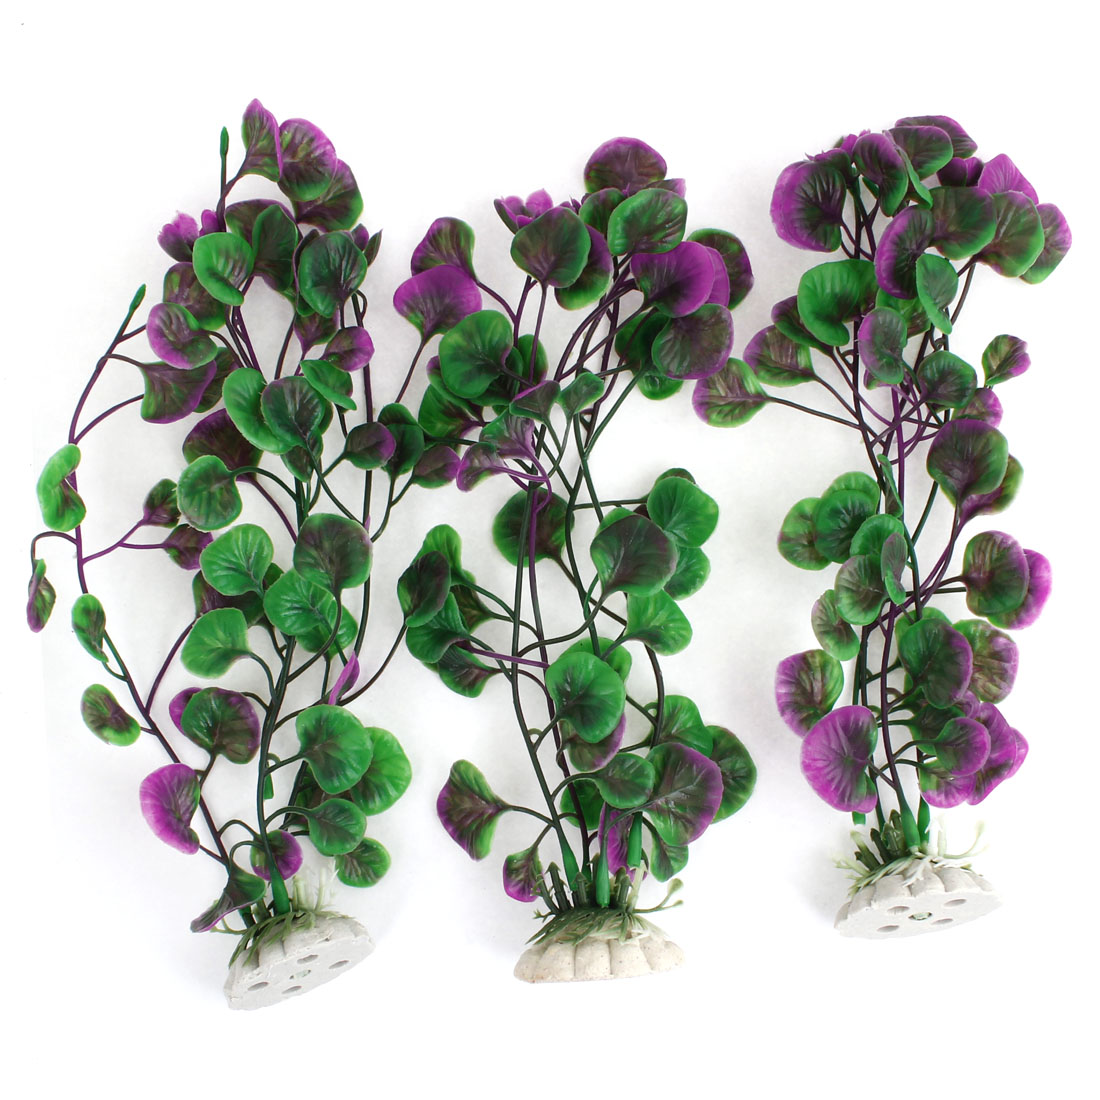 "3 Pcs Purple Green Plastic Aquatic Water Weeds Plant 8.9"" for Aquarium"